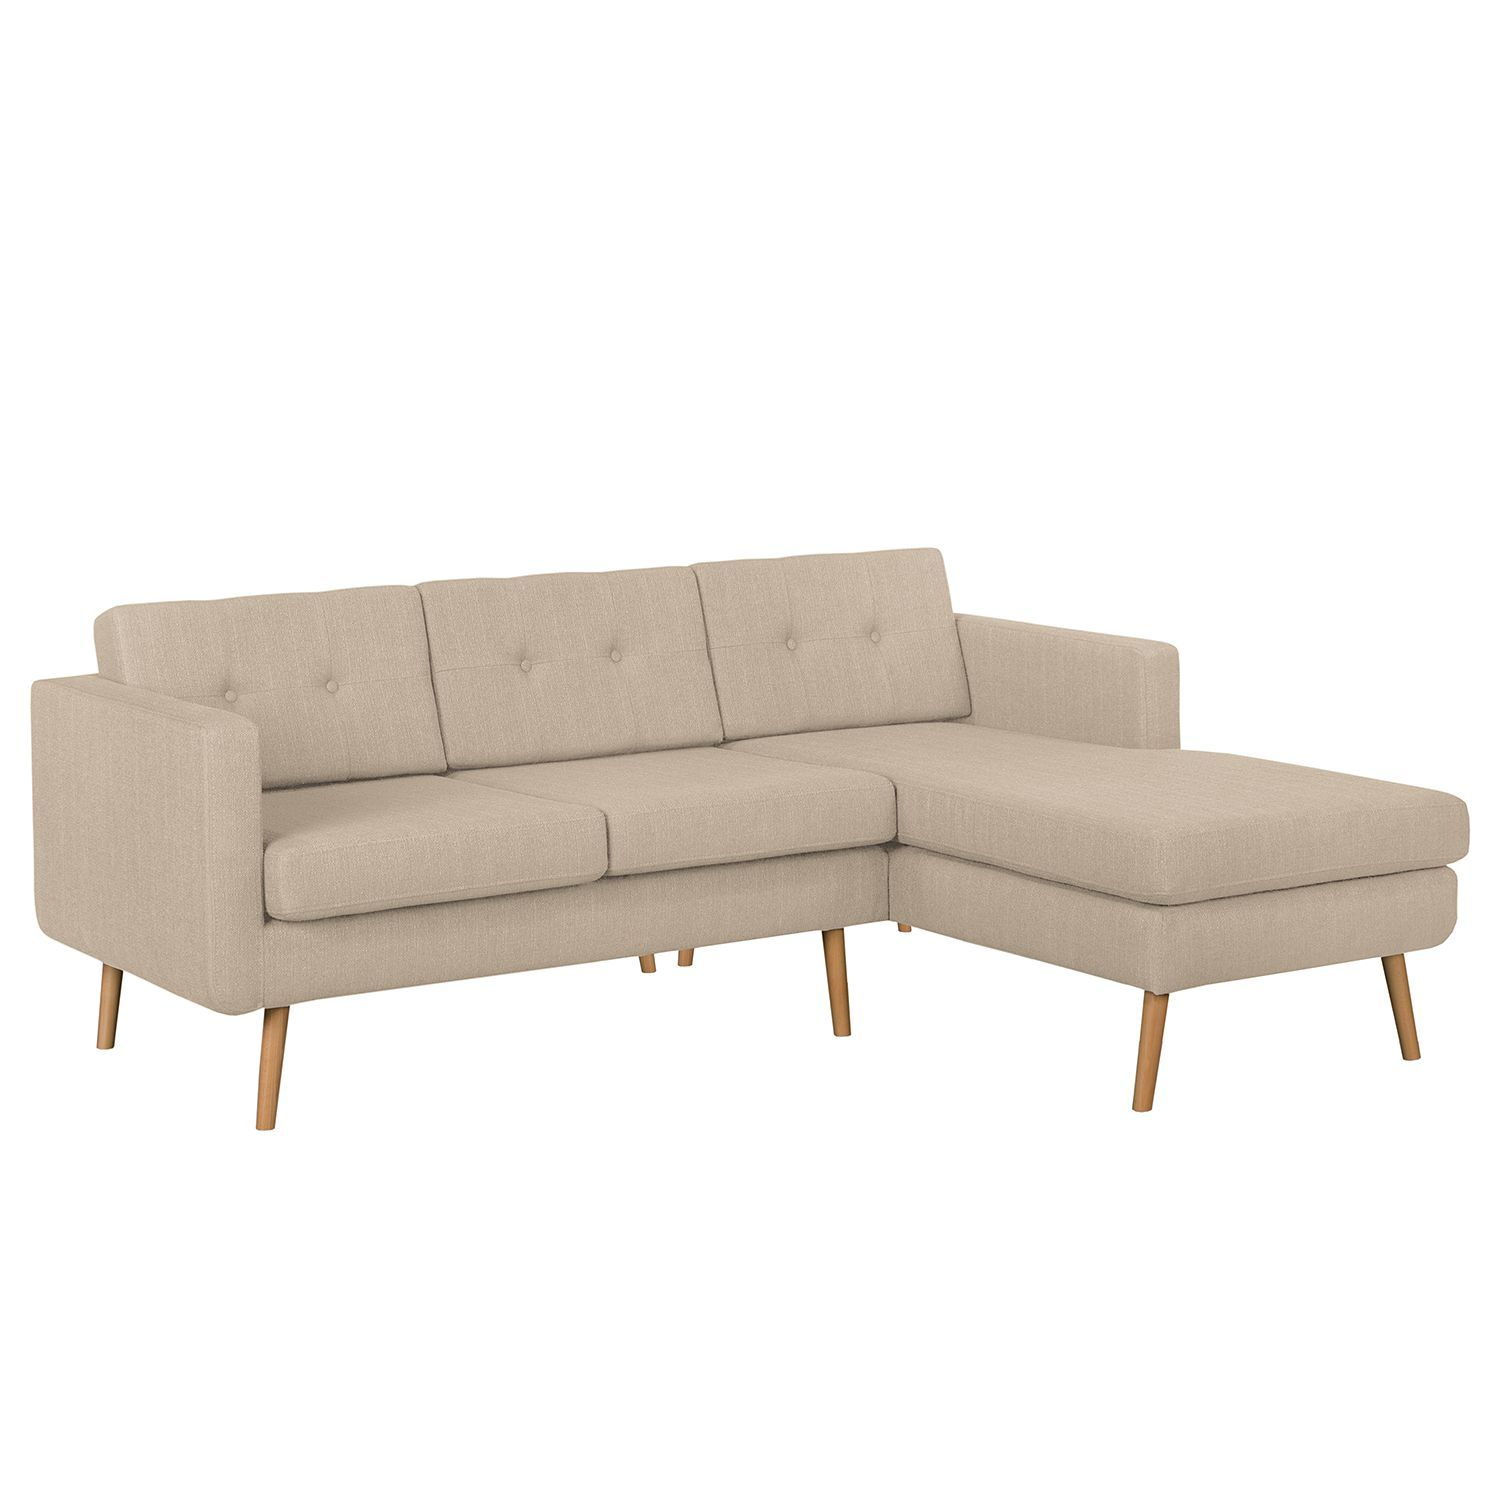 Ecksofa Lauris Pin By Ladendirekt On Sofas Couches Couch Sofa Living Room